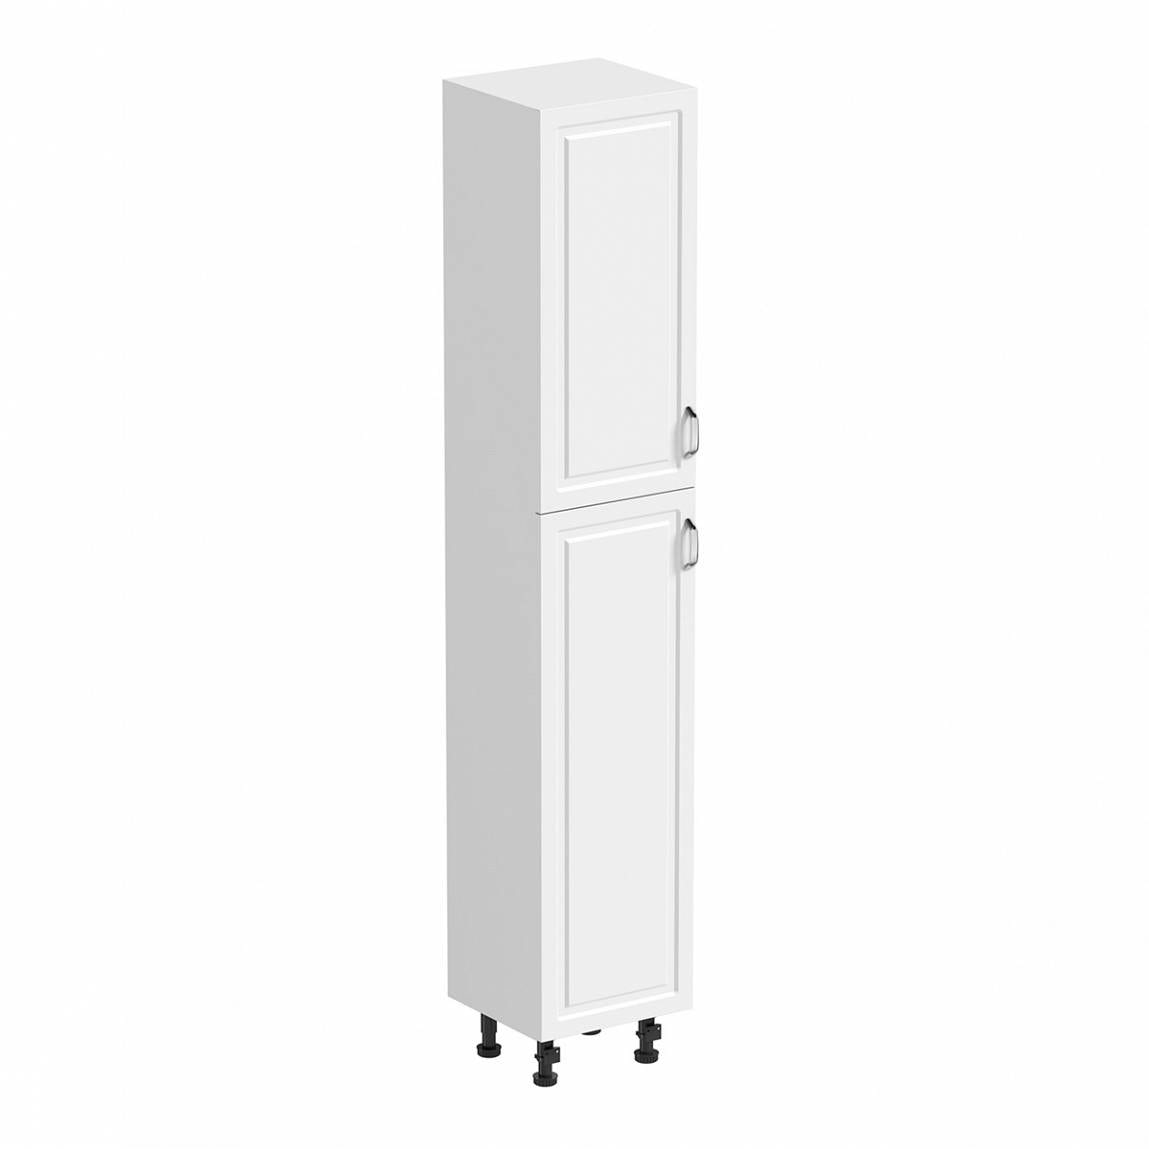 Orchard Florence white tall storage cabinet 350mm